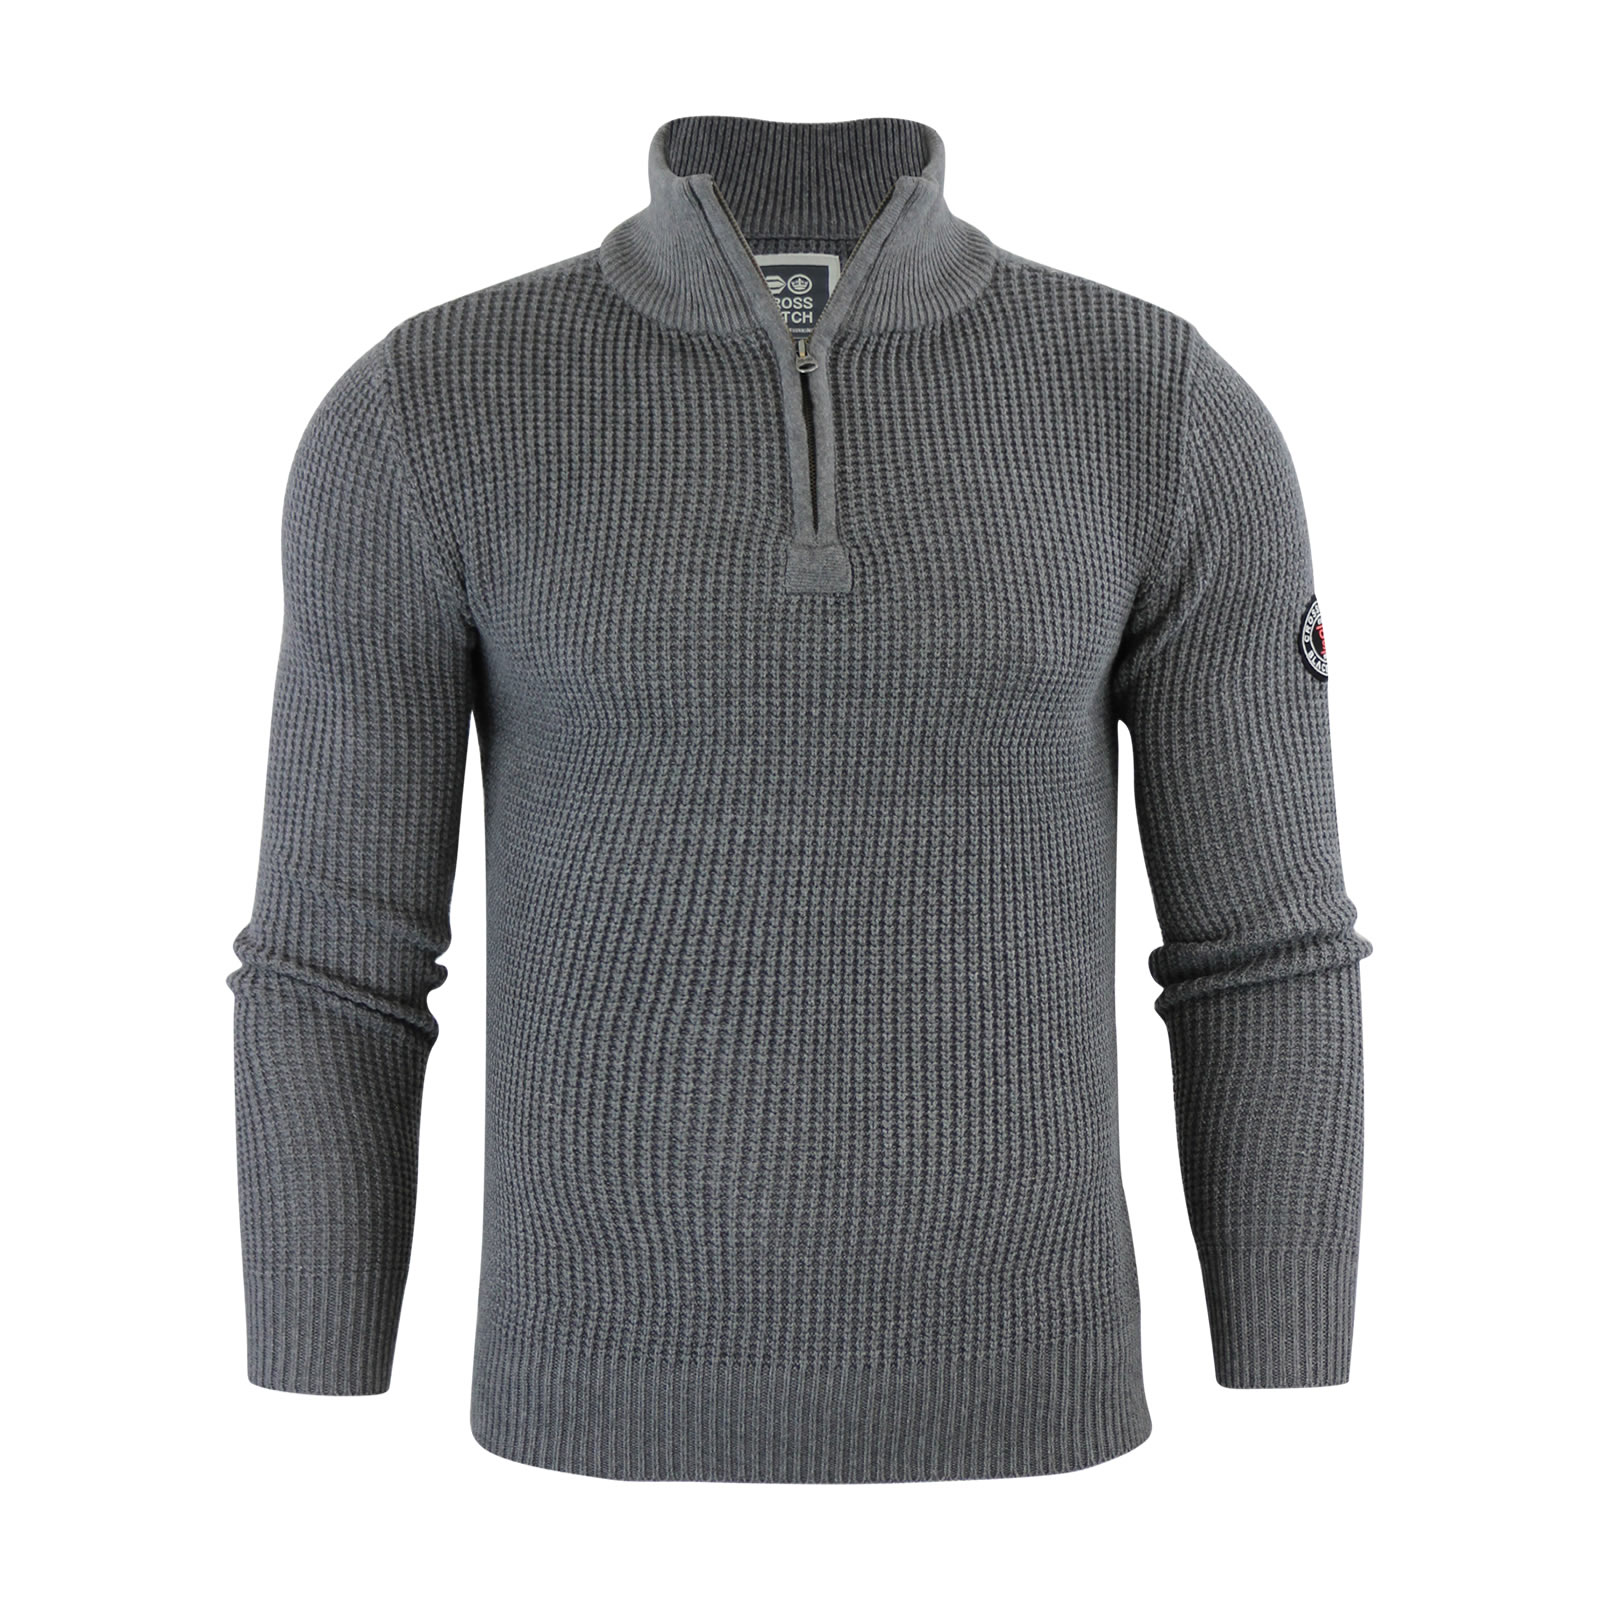 Discover NICCE's selection of men's hoodies and sweatshirts. From zip up hoodies to overhead pull over hoodies, NICCE's hooded jumpers are a must-have staple in every closet. Designed in East London. Free delivery on all orders.